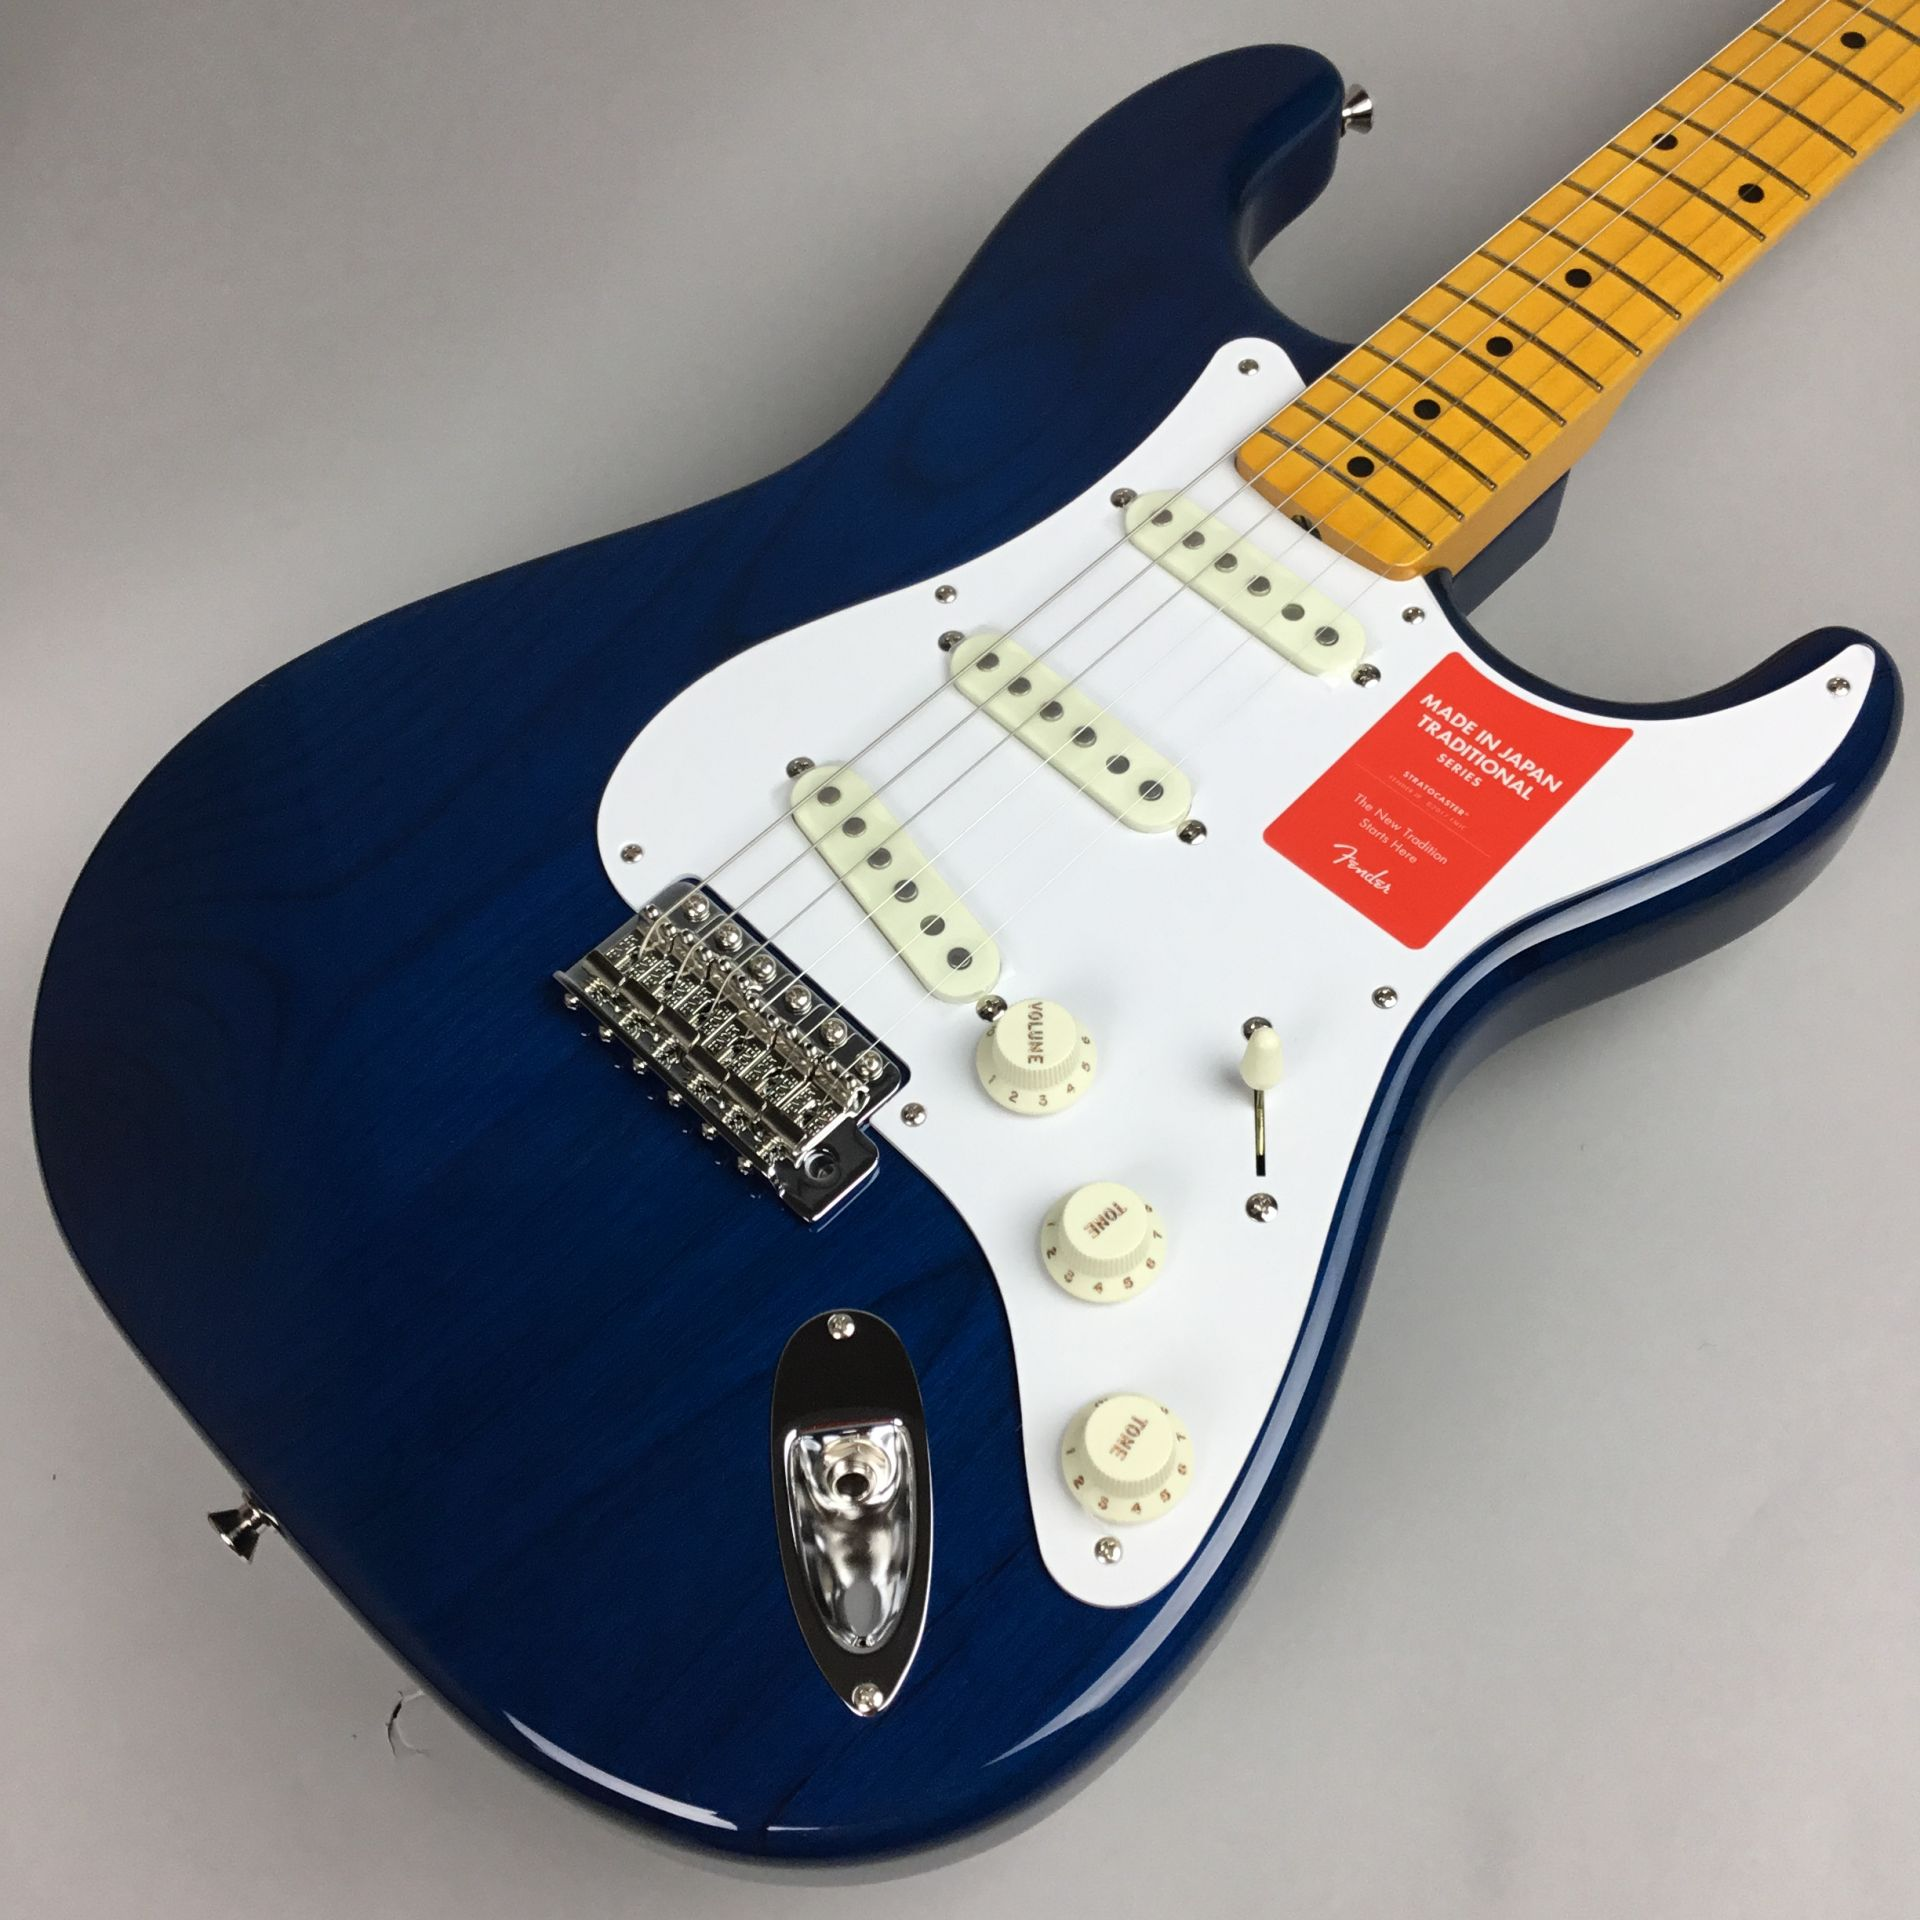 MADE IN JAPAN TRADITIONAL 58 STRATOCASTER®